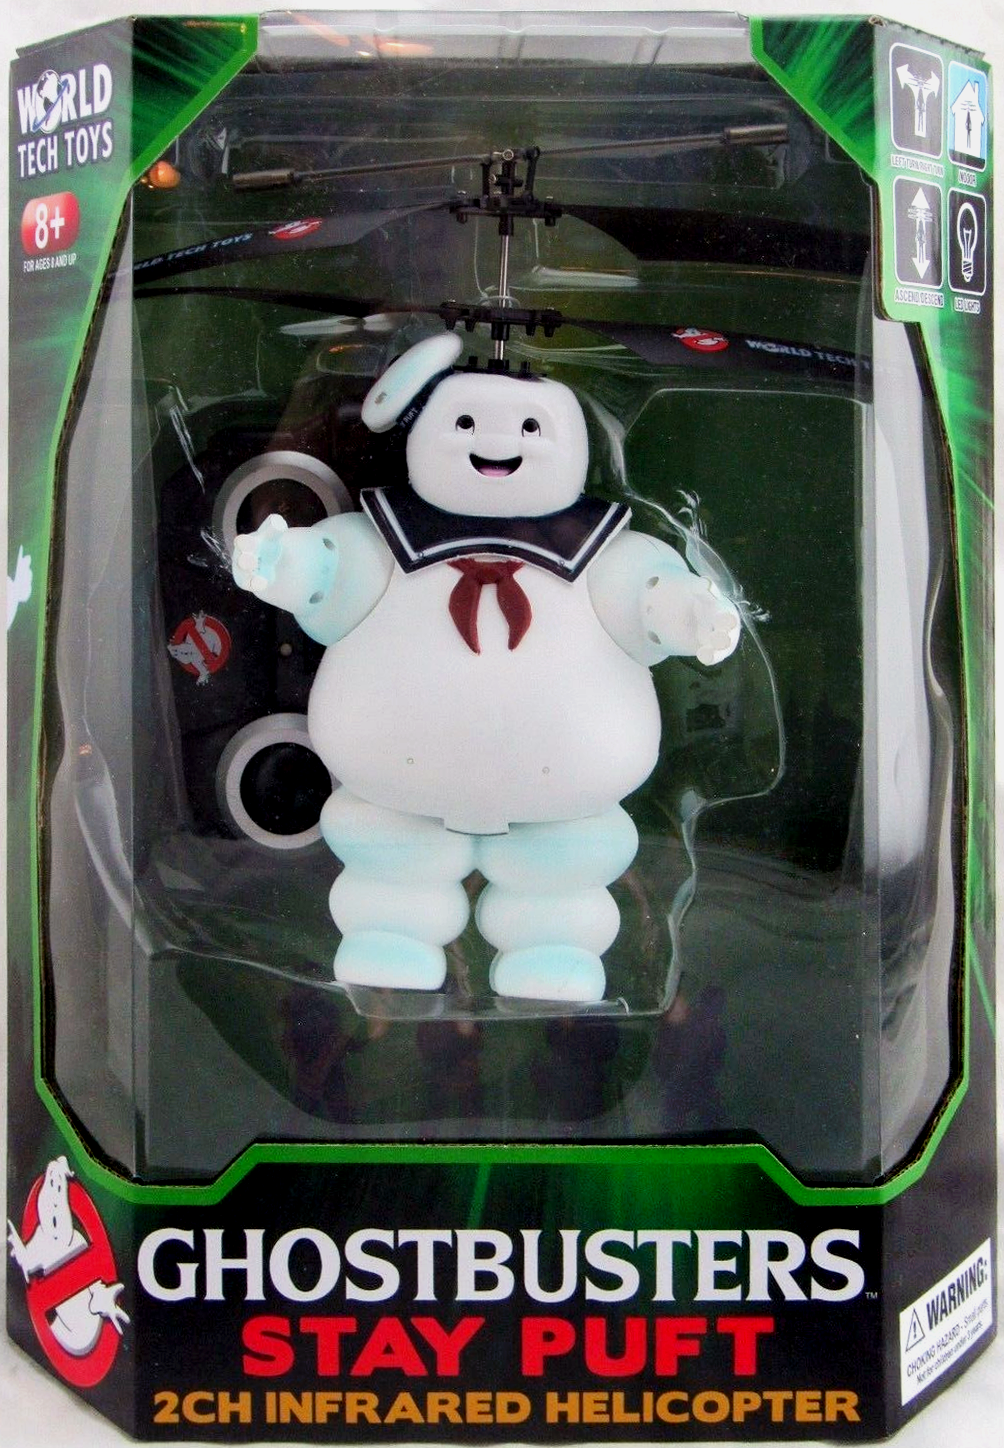 World Tech Toys: Stay Puft 2Ch Infrared Helicopter